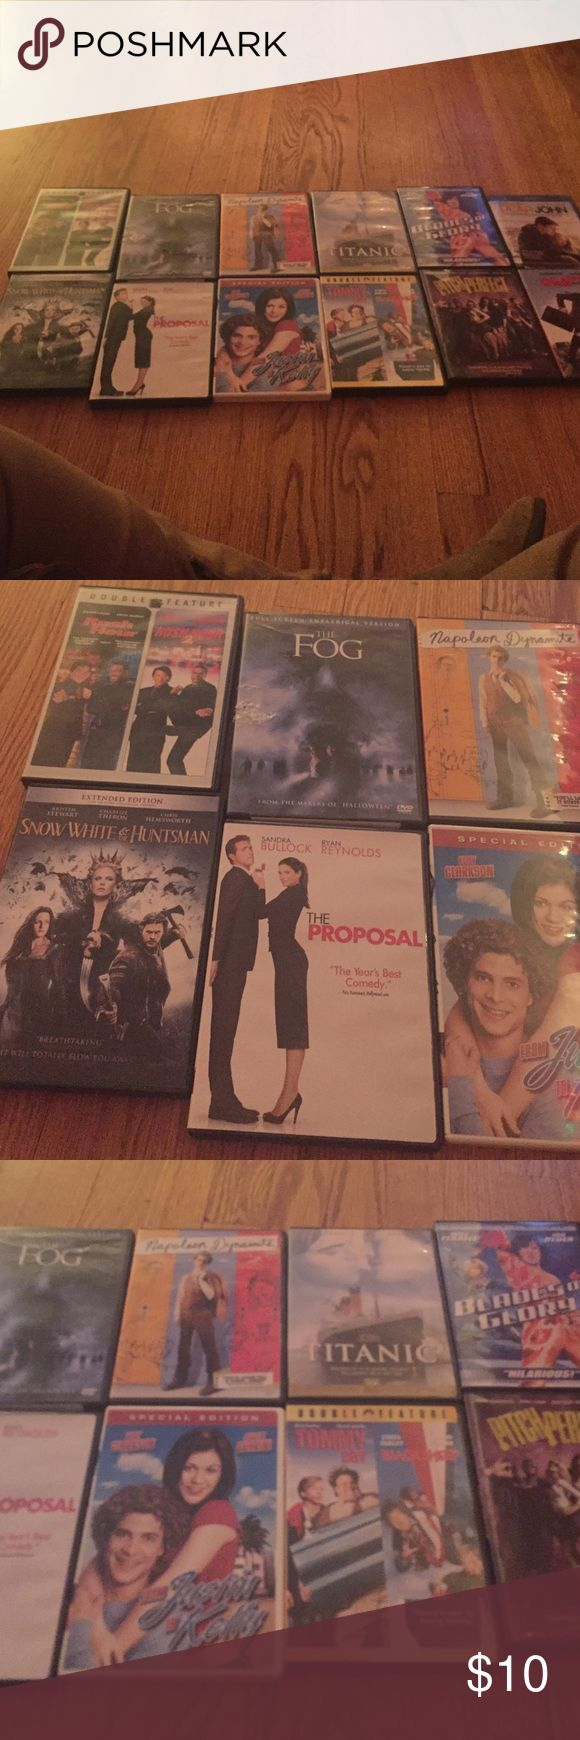 DVD set Some are new and unopened others are like new. Includes dear john, fun with dick and Jane, pitch perfect, blades of glory, titanic, Justin and Kelly, Tommy boy, black sheep, napoleons dynamite the fog, the proposal, snow White and huntsman , rush hour, rush hour 2 Accessories